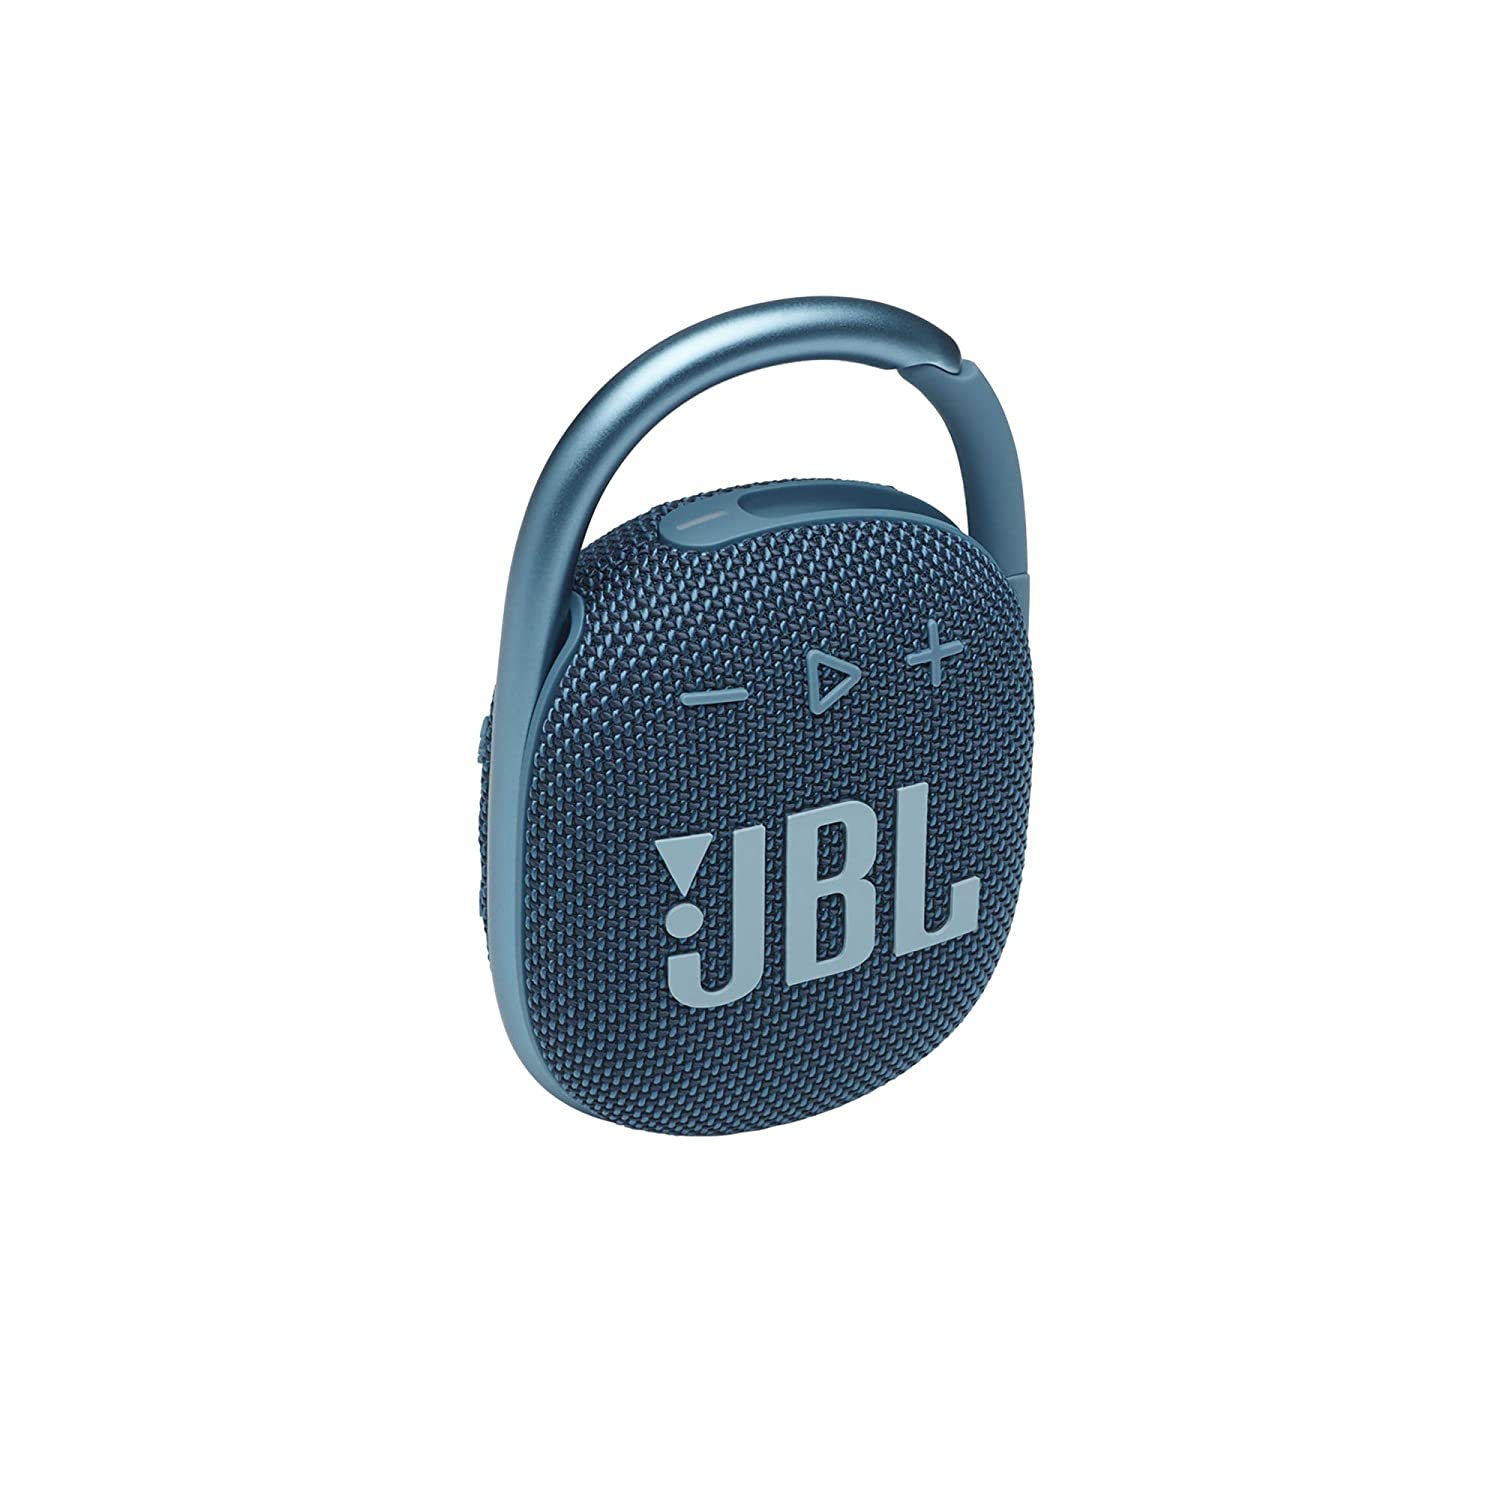 JBL Clip 4 Bluetooth Speaker Specs, Features, Price